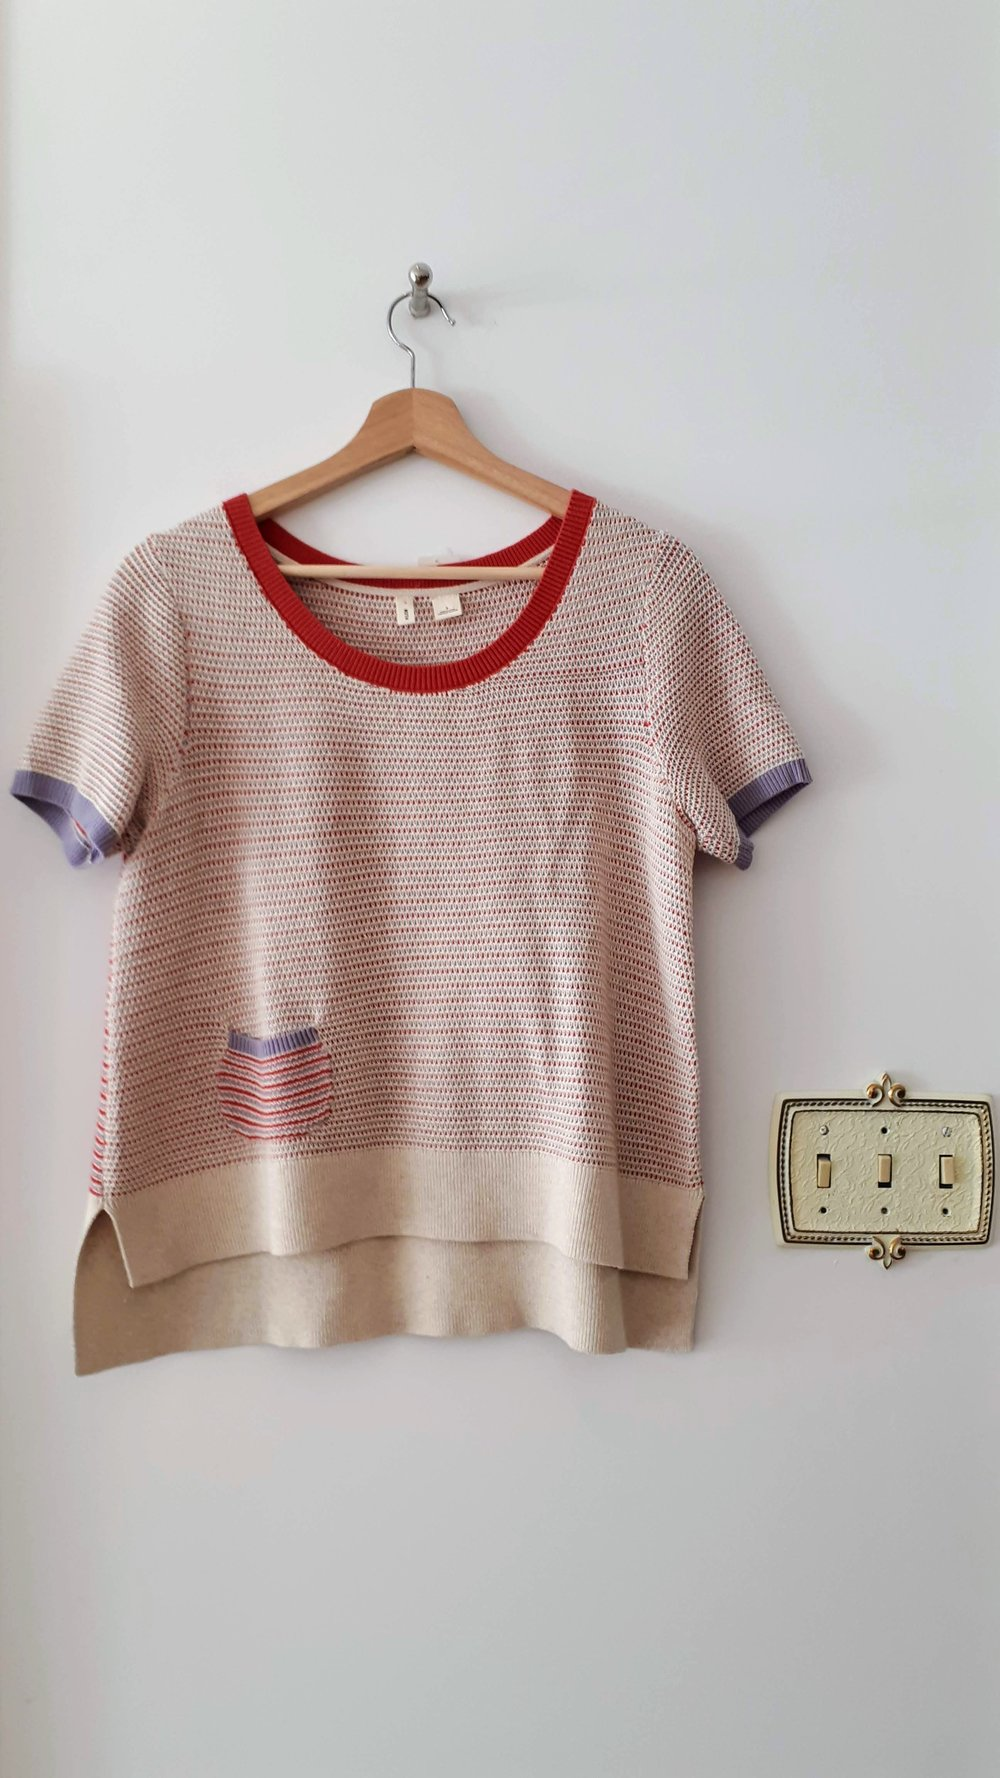 Moth top; Size S/M, $26